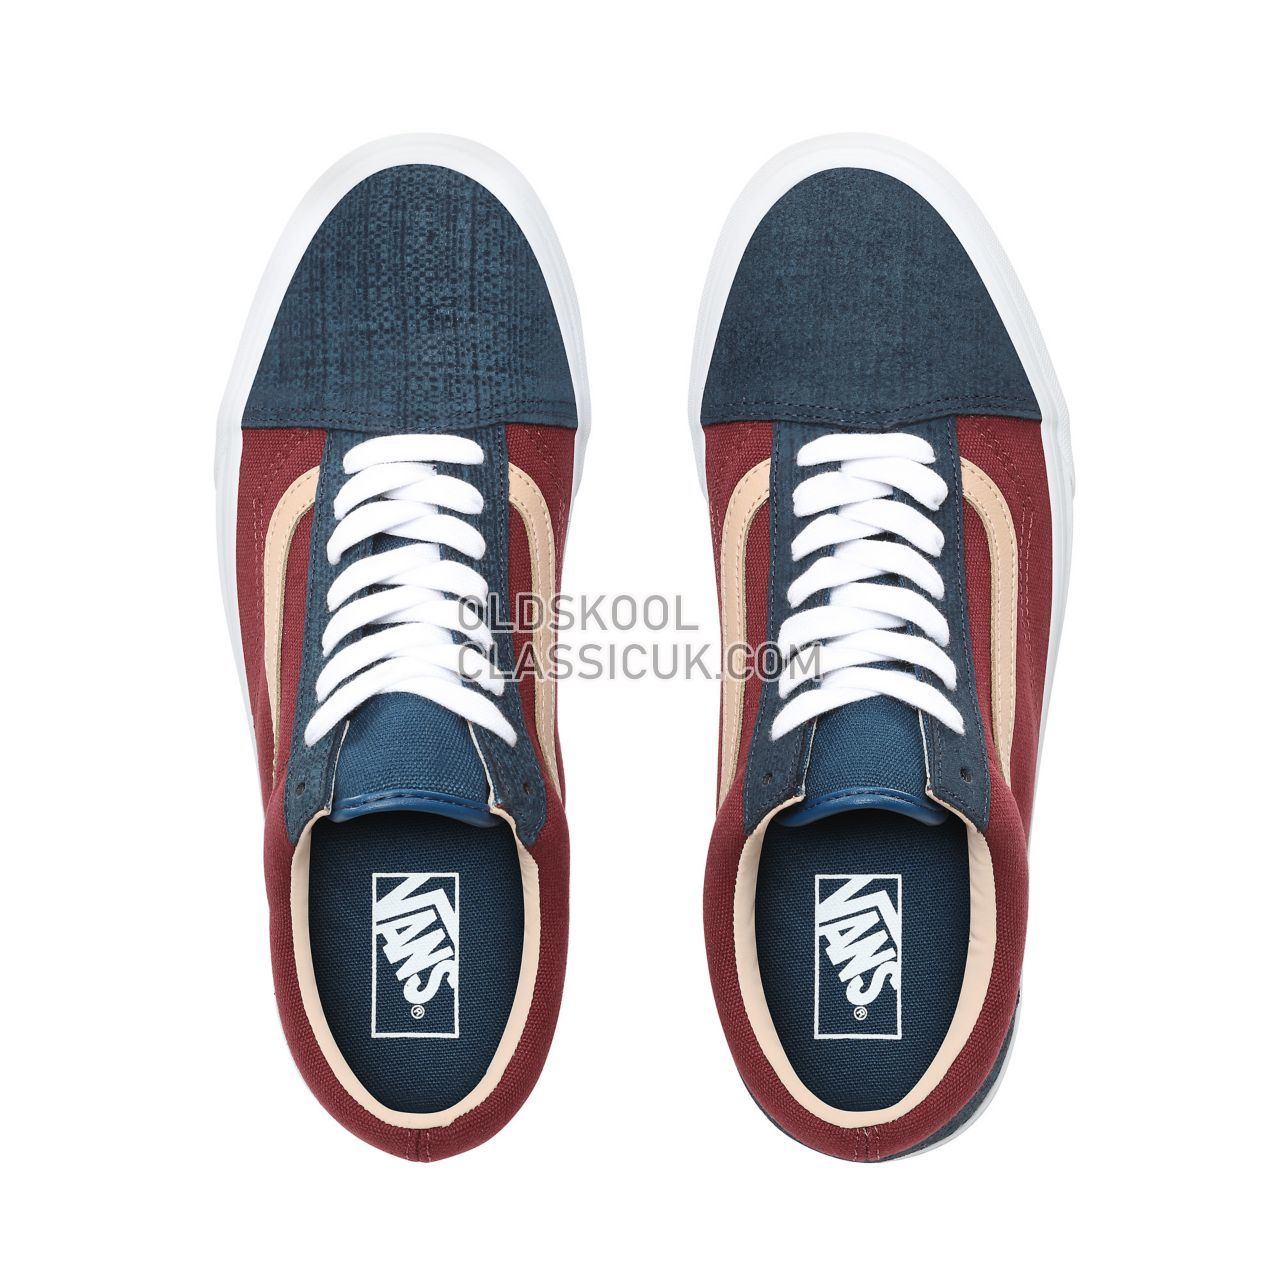 1812fa72b7e ... Vans Textured Suede Old Skool Sneakers Mens Womens Unisex (Textured  Suede) Sailor Blue